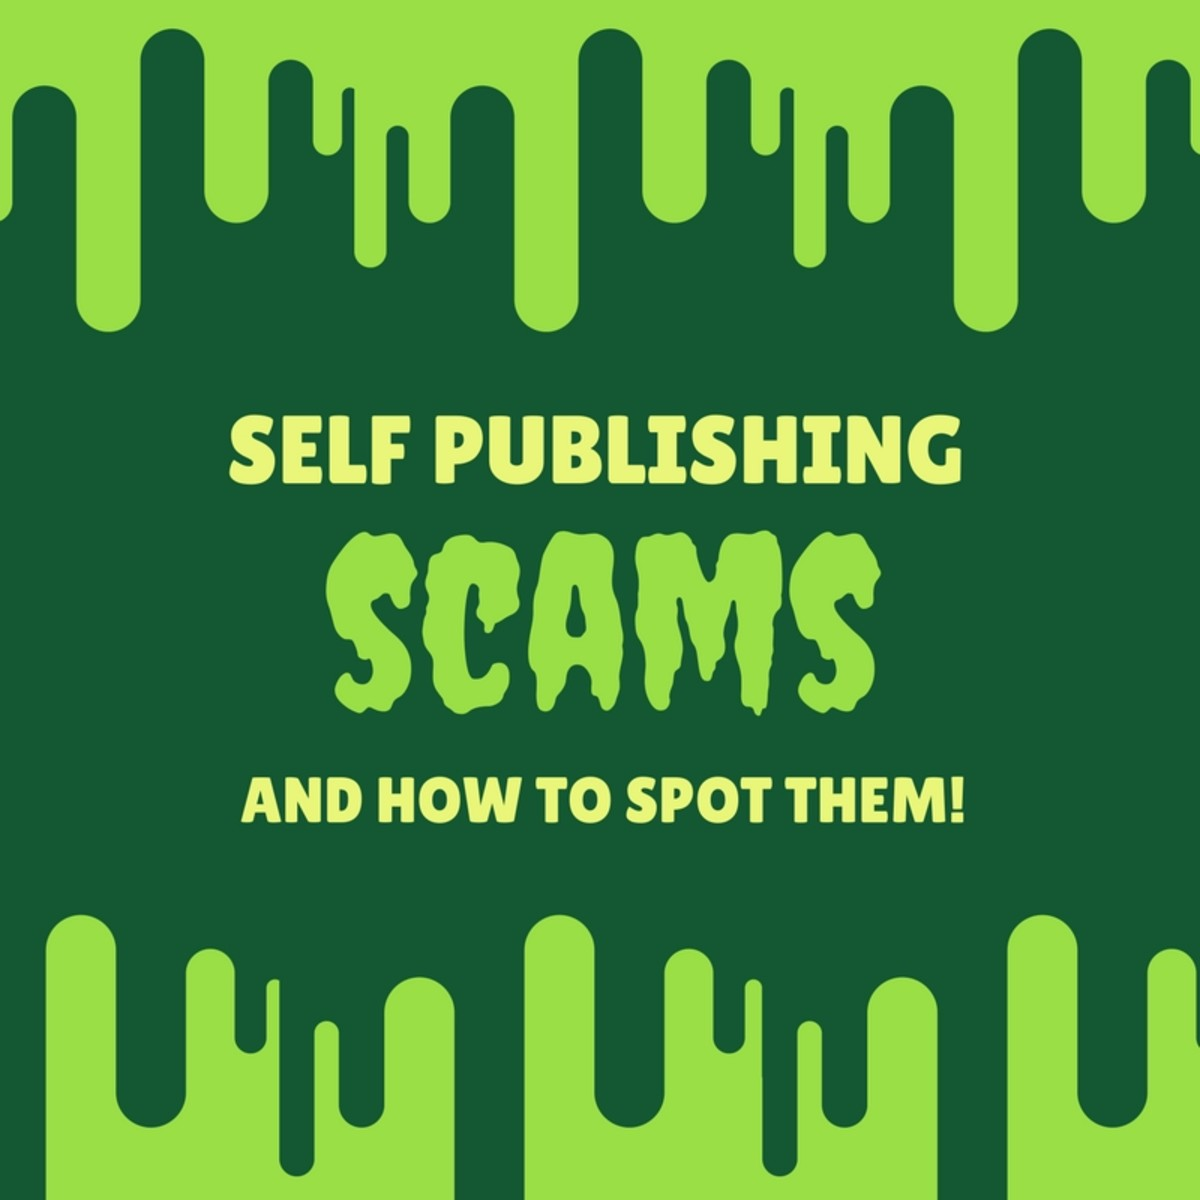 Self Publishing Scams and How to Spot Them